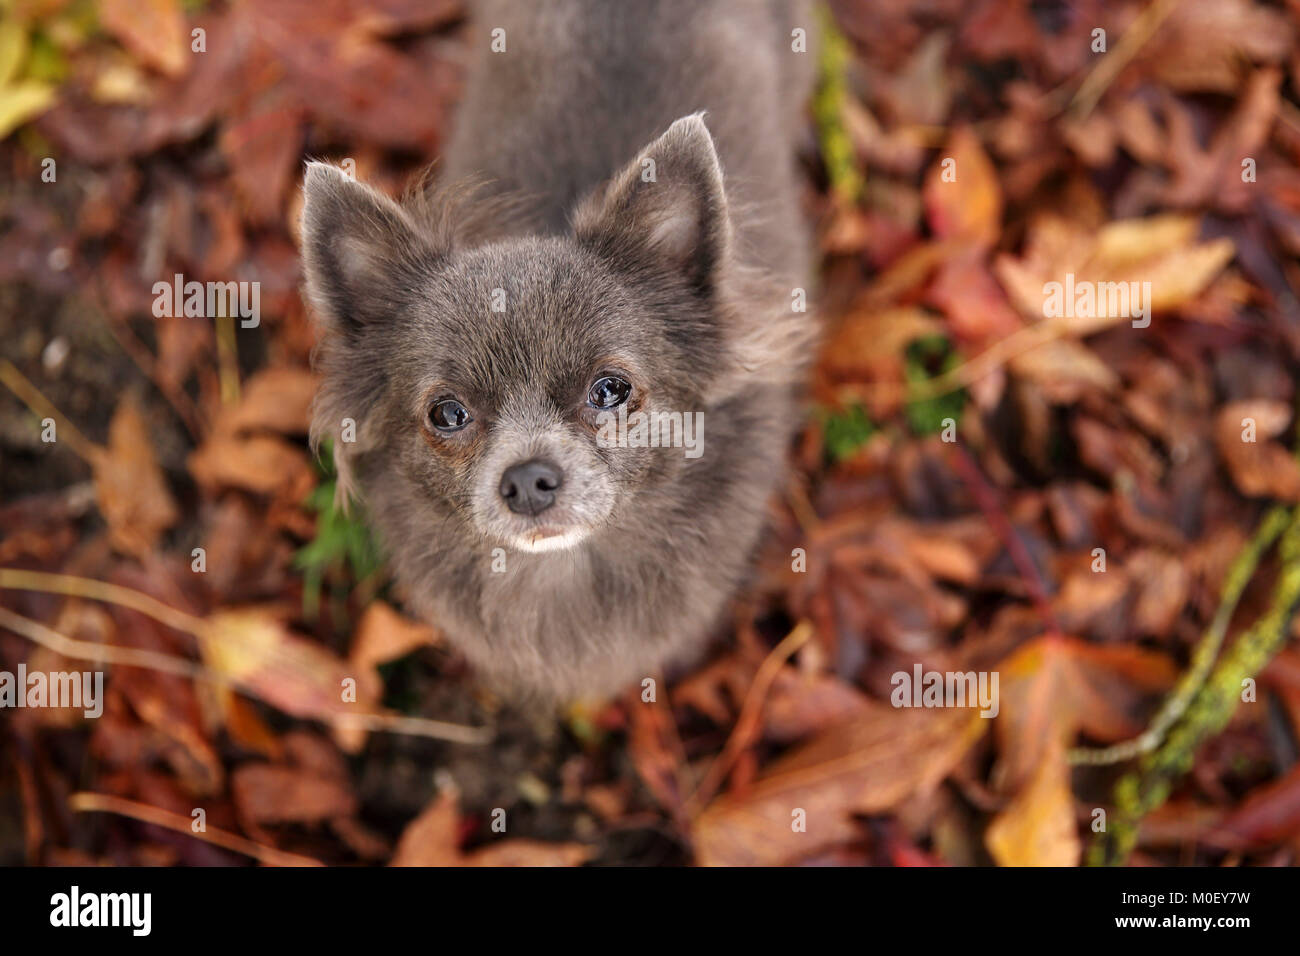 Overhead view of a longhaired Chihuahua dog standing in a autumn leaves Stock Photo